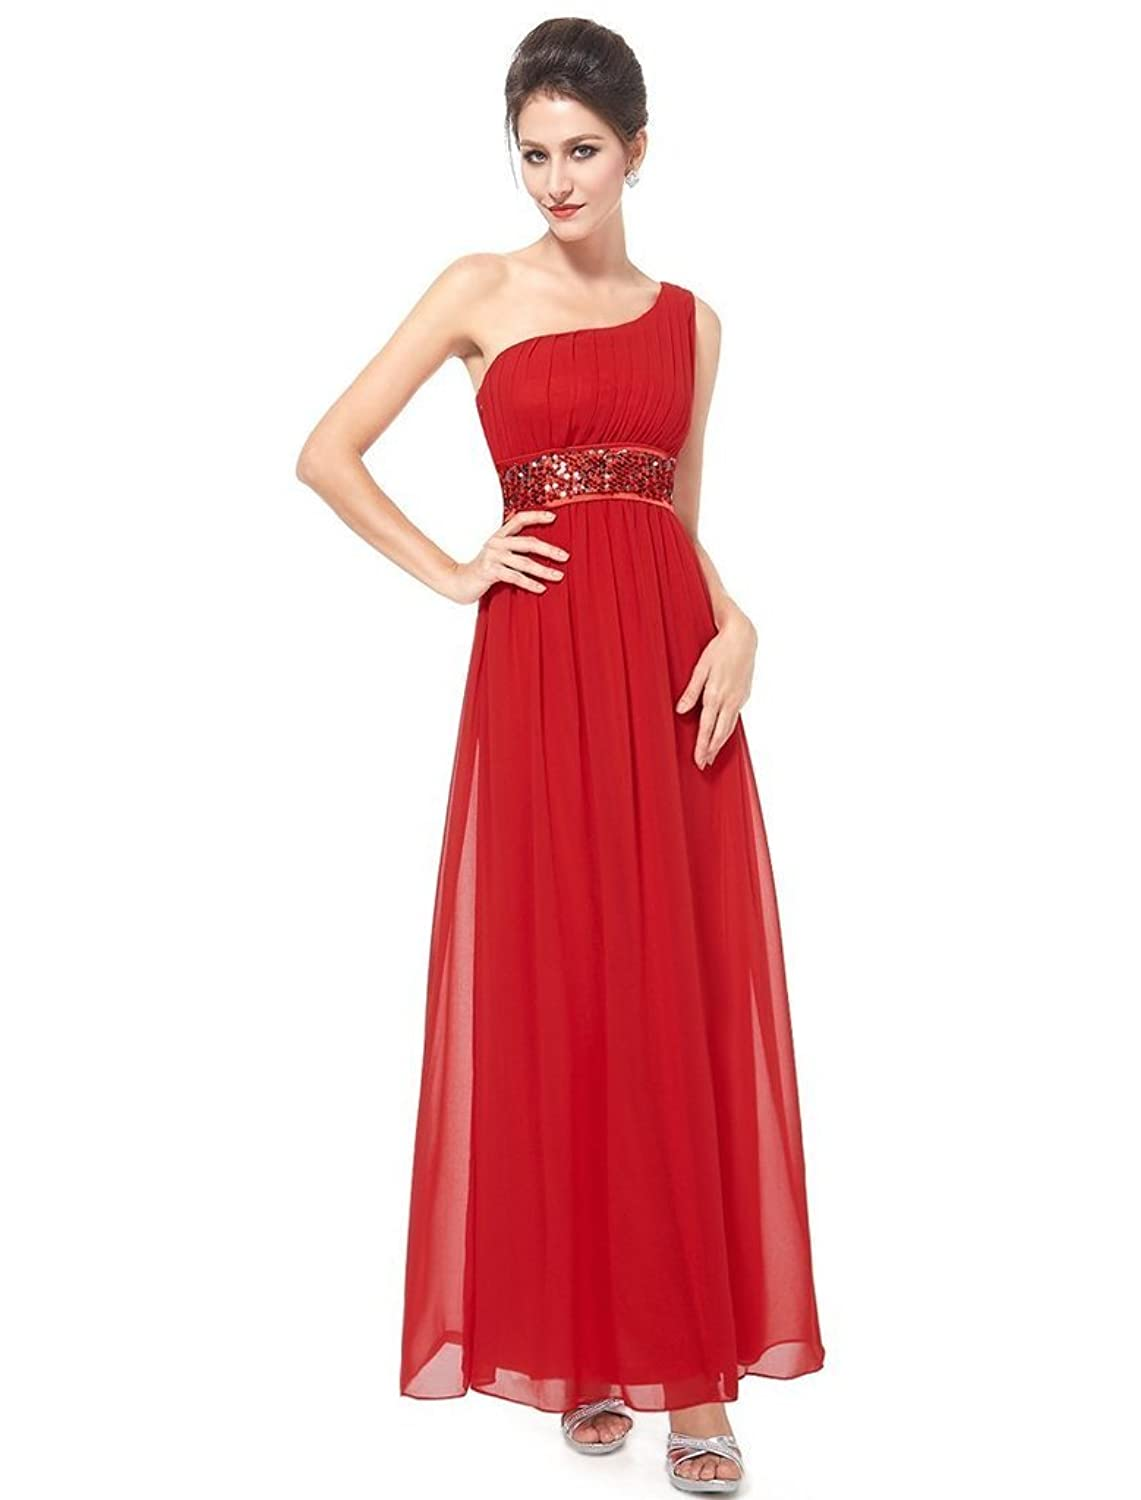 Eudolah Women's One-Shoulder Evening/Bridesmaid/Mother of the Bride/Wedding Party Maxi Dress